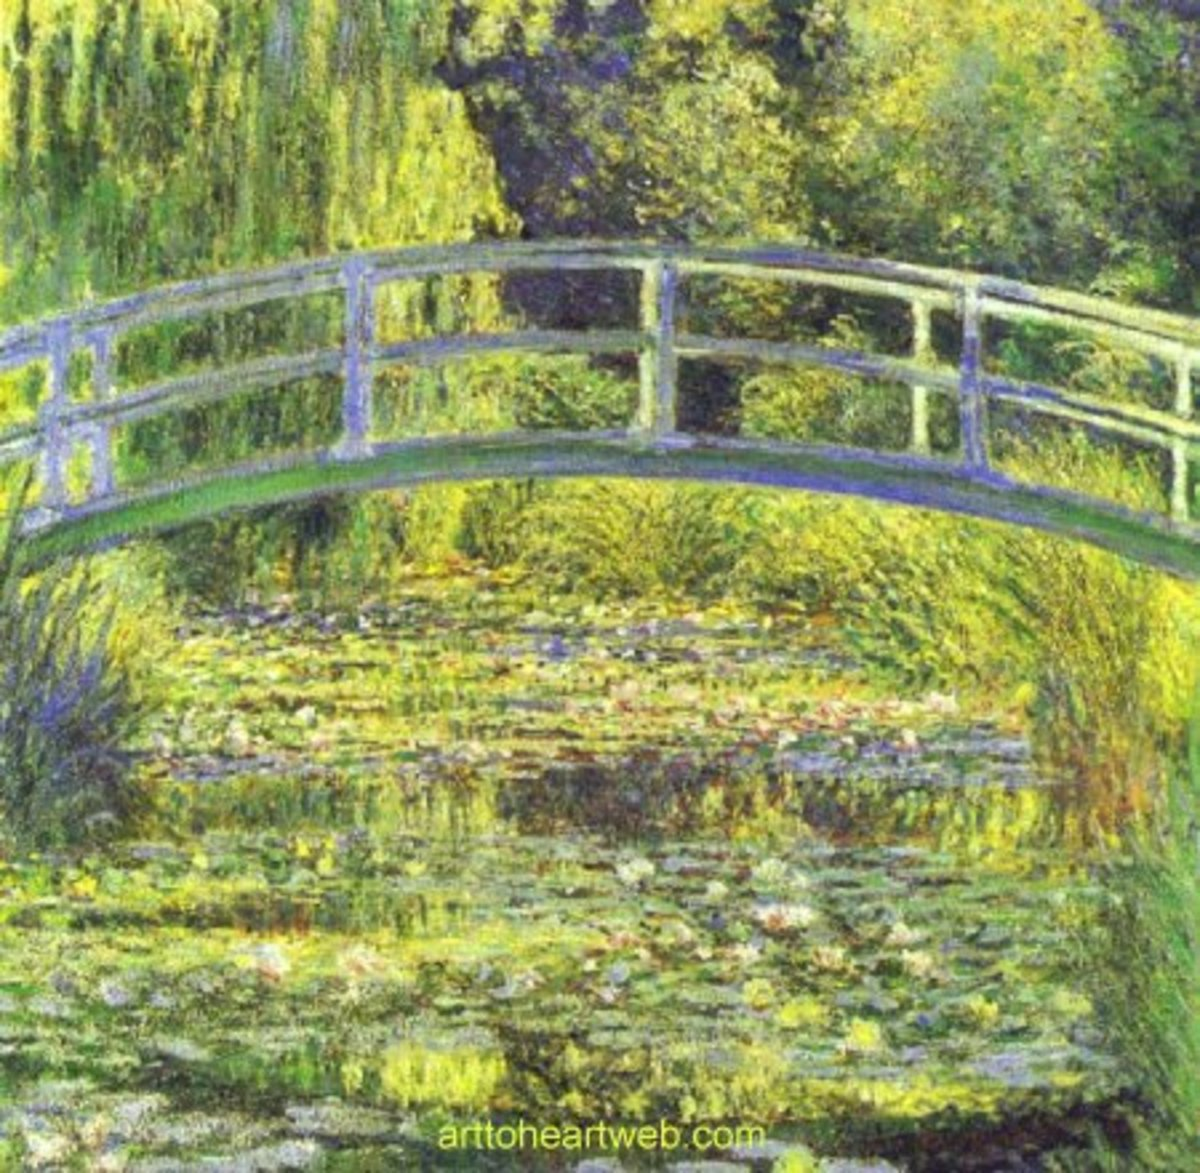 One of Claude Monet's many famous paintings of the water lily pond in the garden at Giverney.